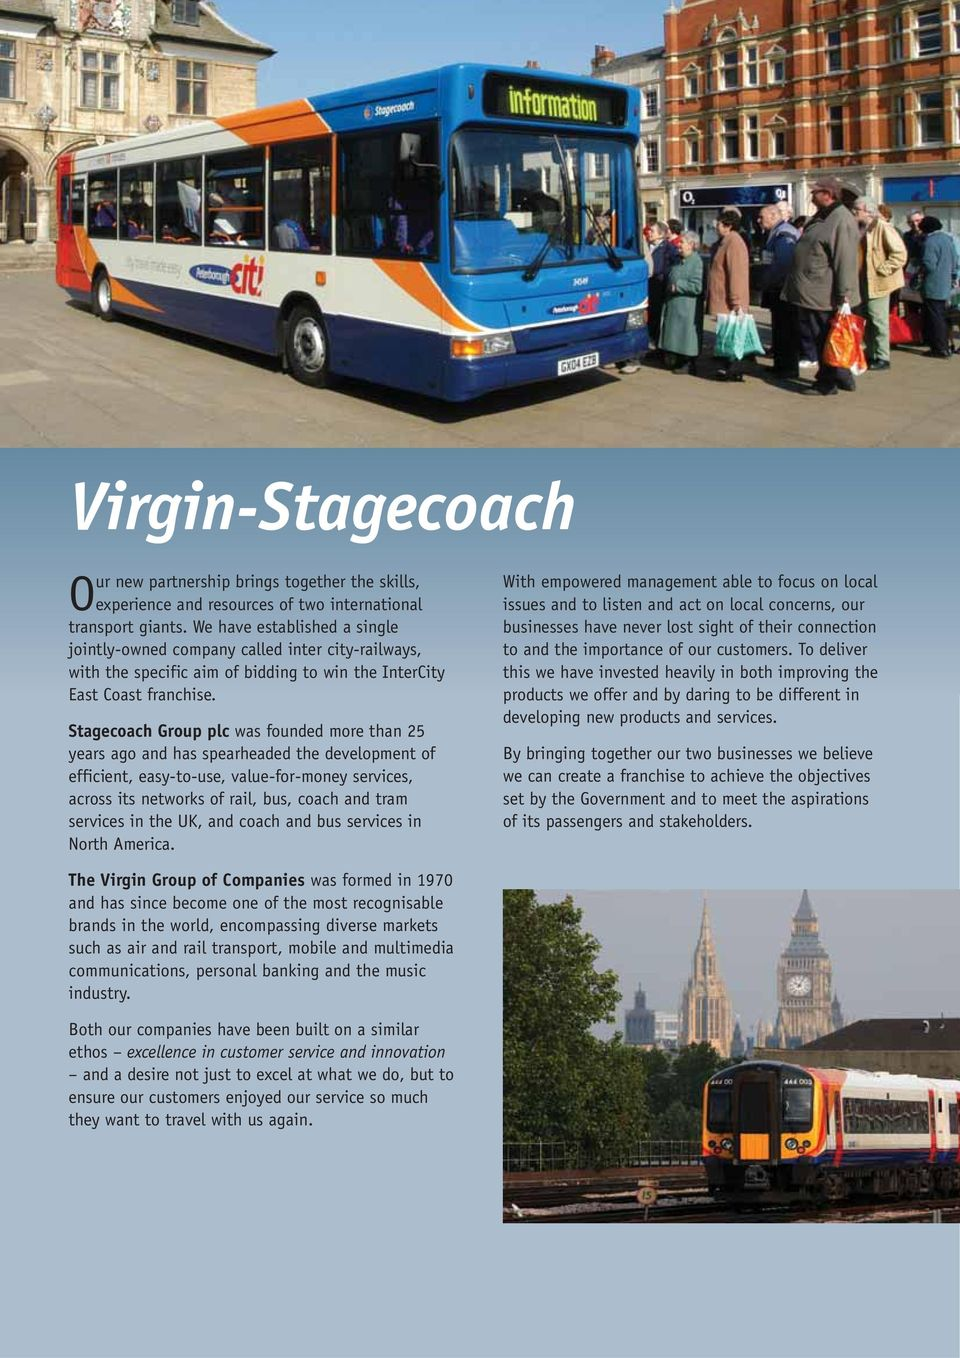 Stagecoach Group plc was founded more than 25 years ago and has spearheaded the development of efficient, easy-to-use, value-for-money services, across its networks of rail, bus, coach and tram